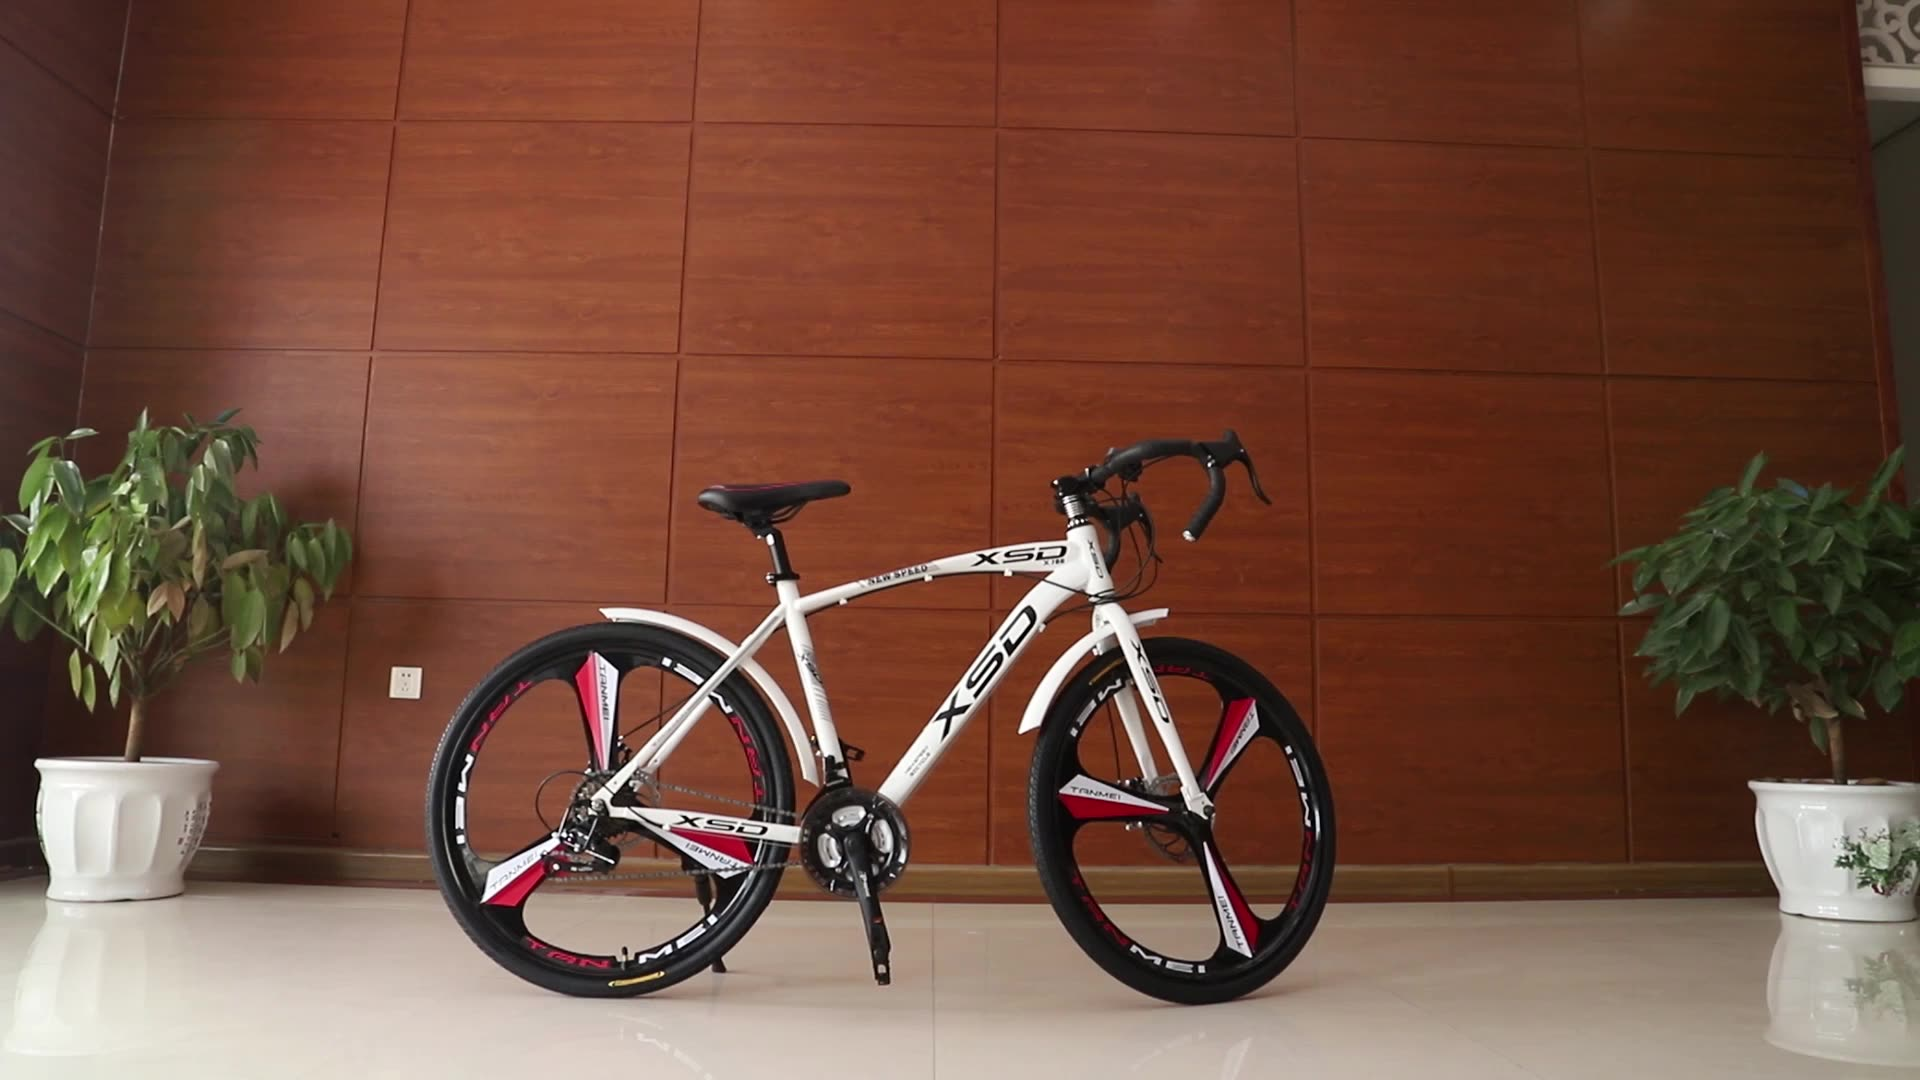 wholesale high-quality mountain bike/road bikes/bycicles for adults